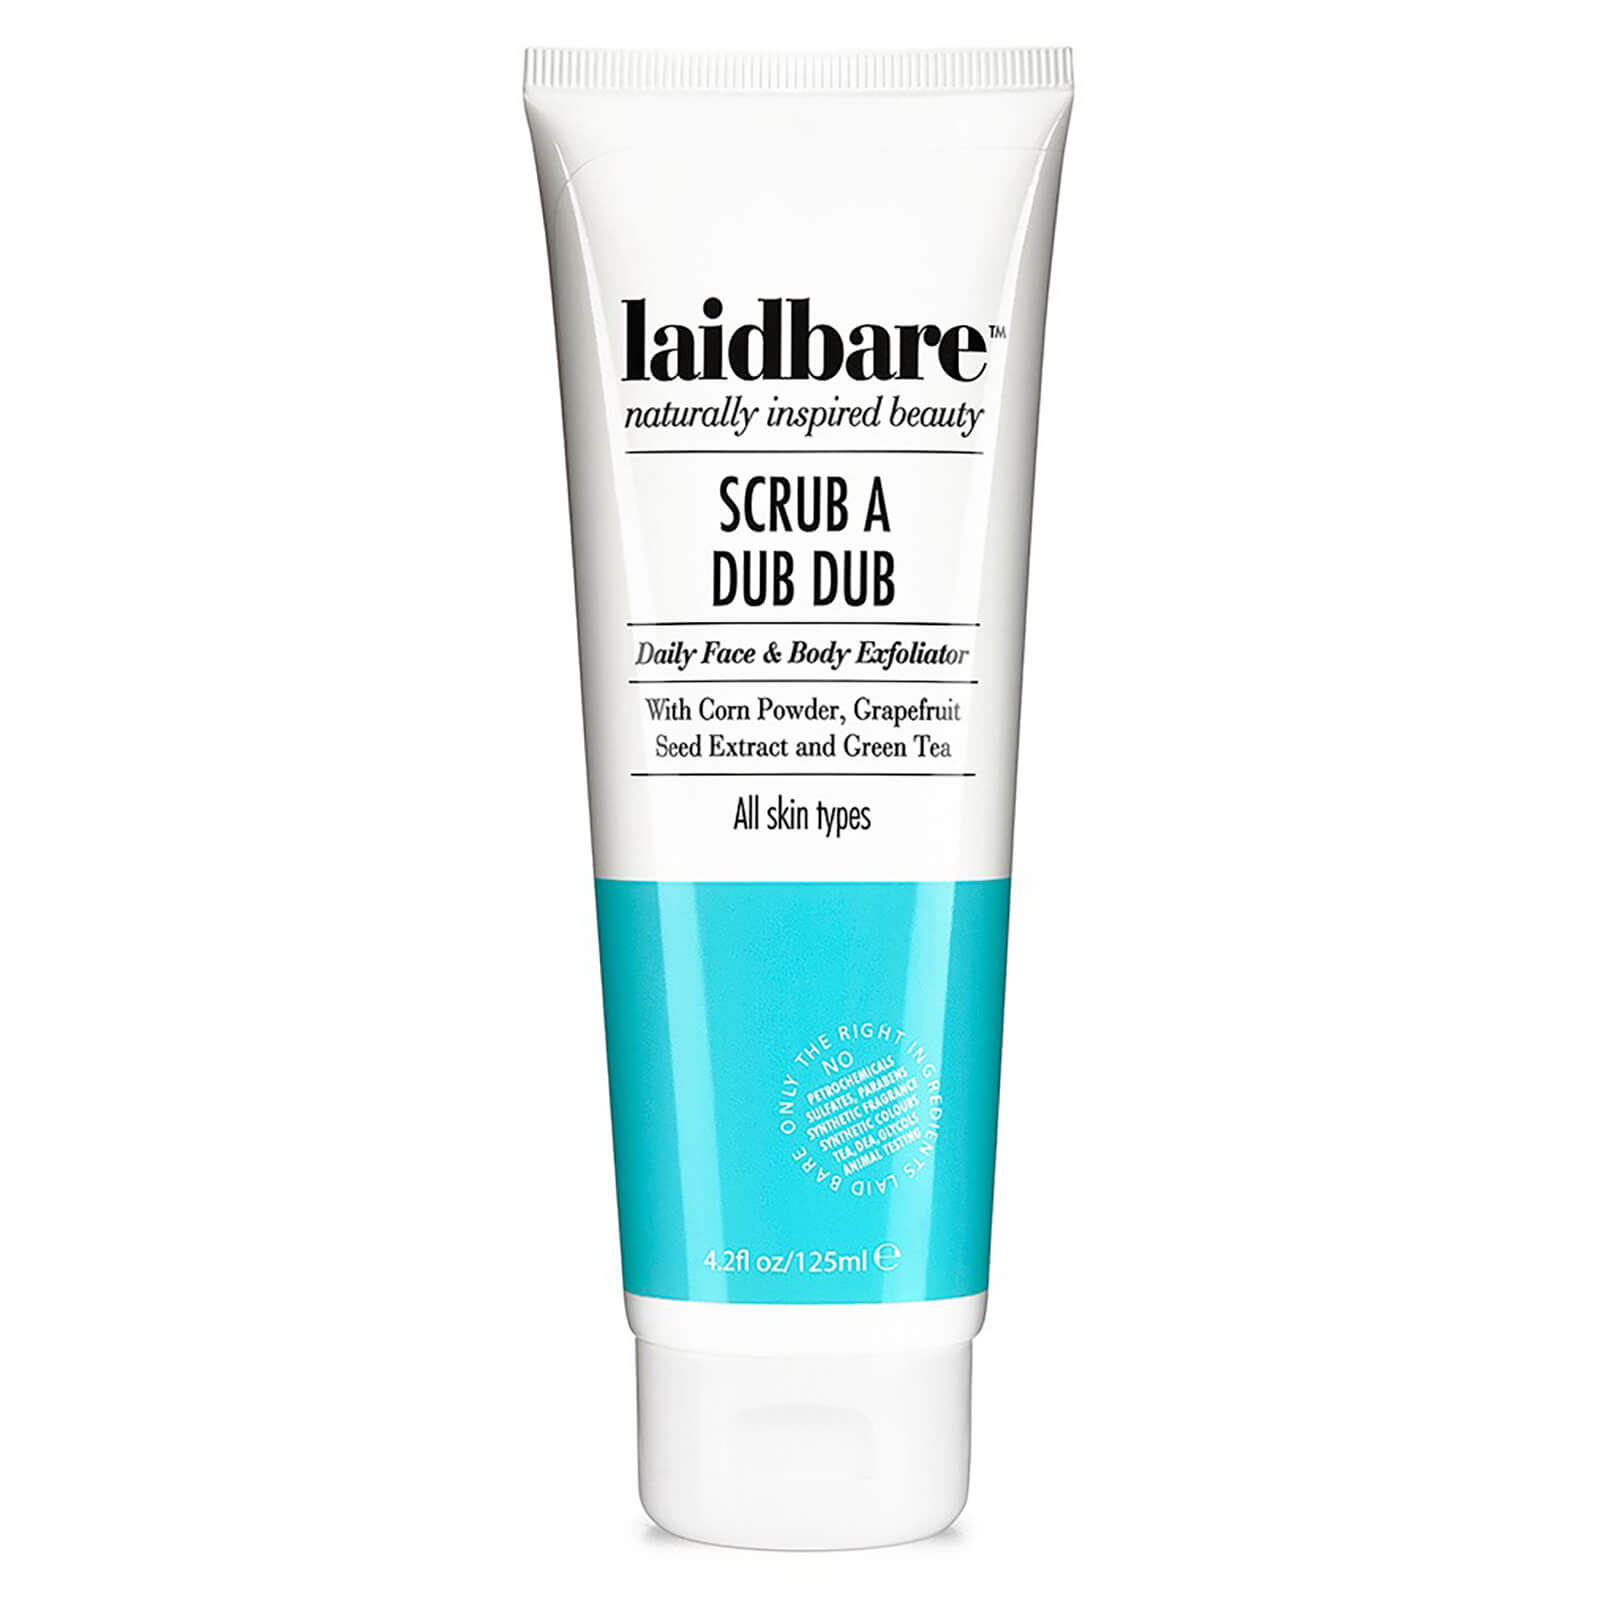 Laidbare Scrub a Dub Dub Daily Facial Exfoliator 125ml | HQ Hair